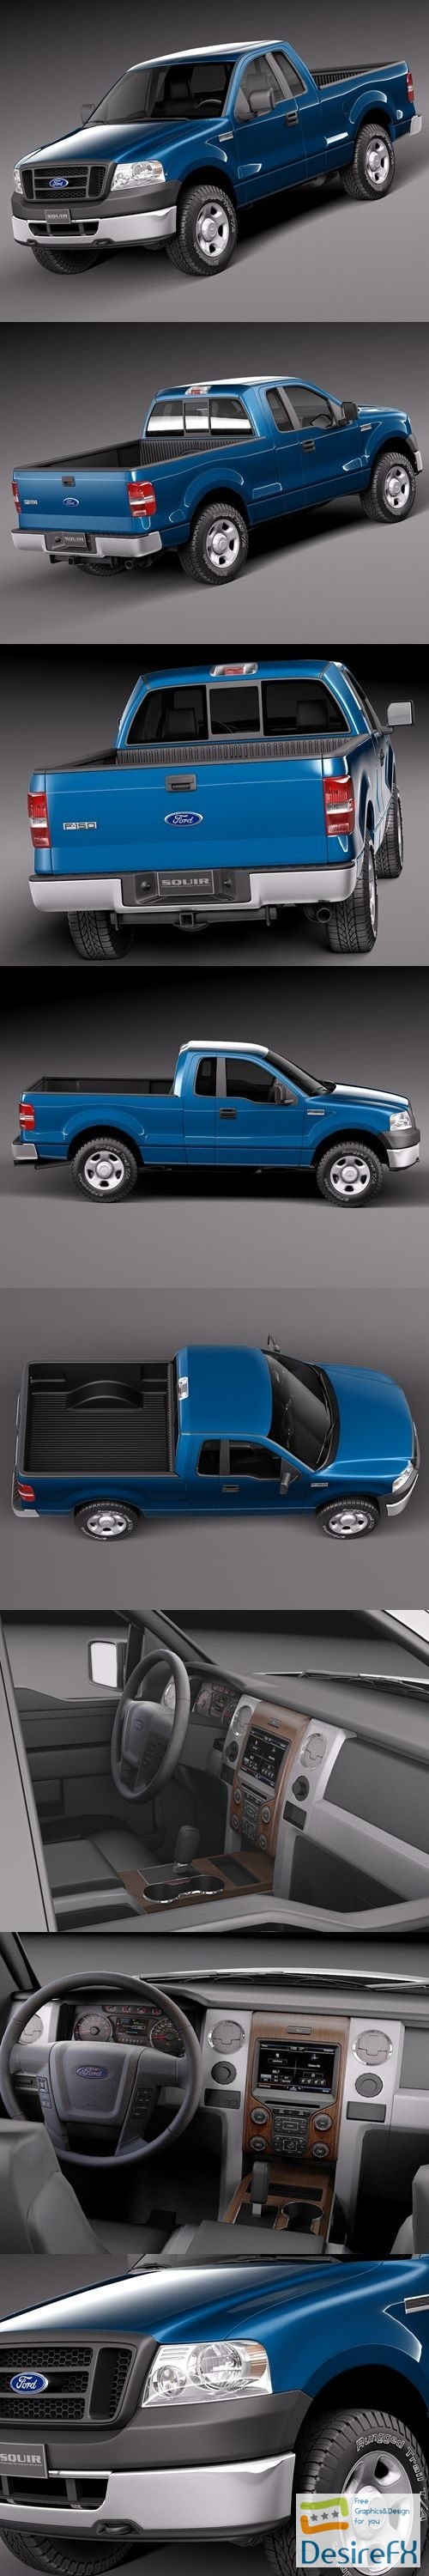 3d-models - Ford F150 Regular Cab 2006 3D Model